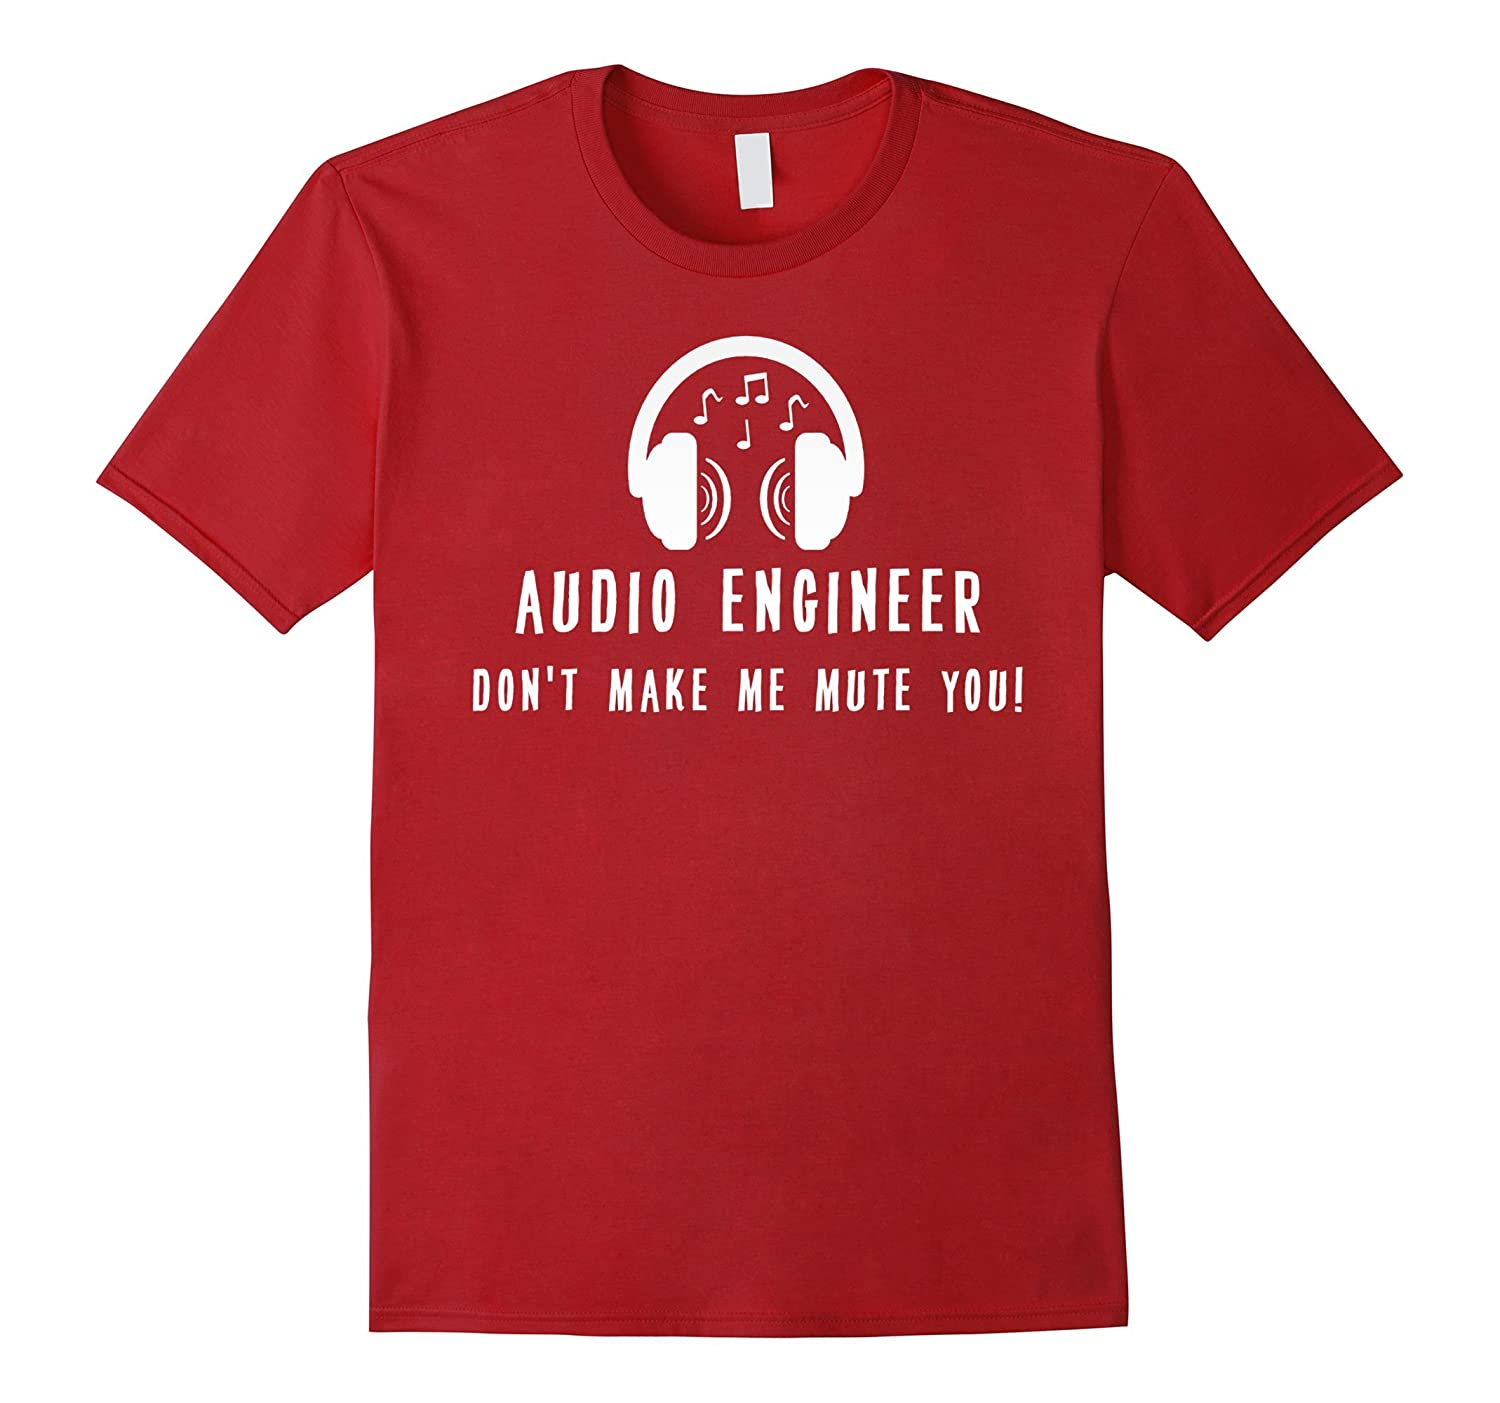 Audio Engineer Shirt - Audio Engineer dont make me mute you-TH